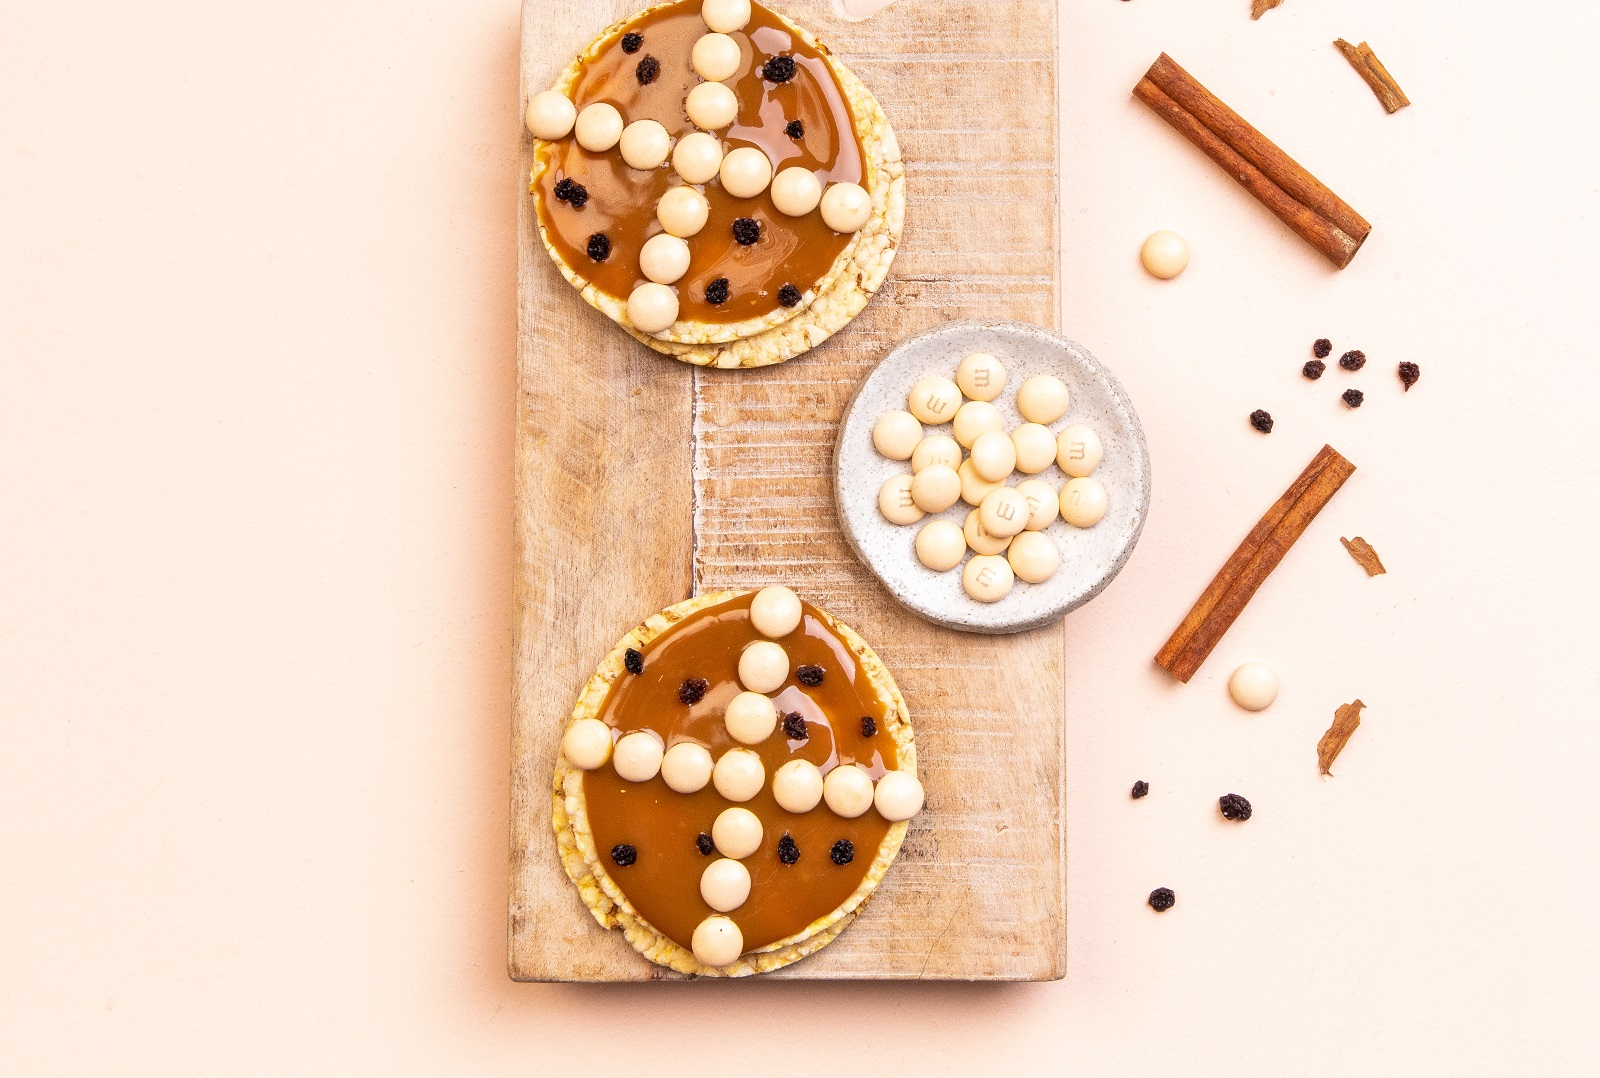 Hot Cross Bun version of Corn Thins. Caramel spread, white M&Ms + currants on Corn Thins slices